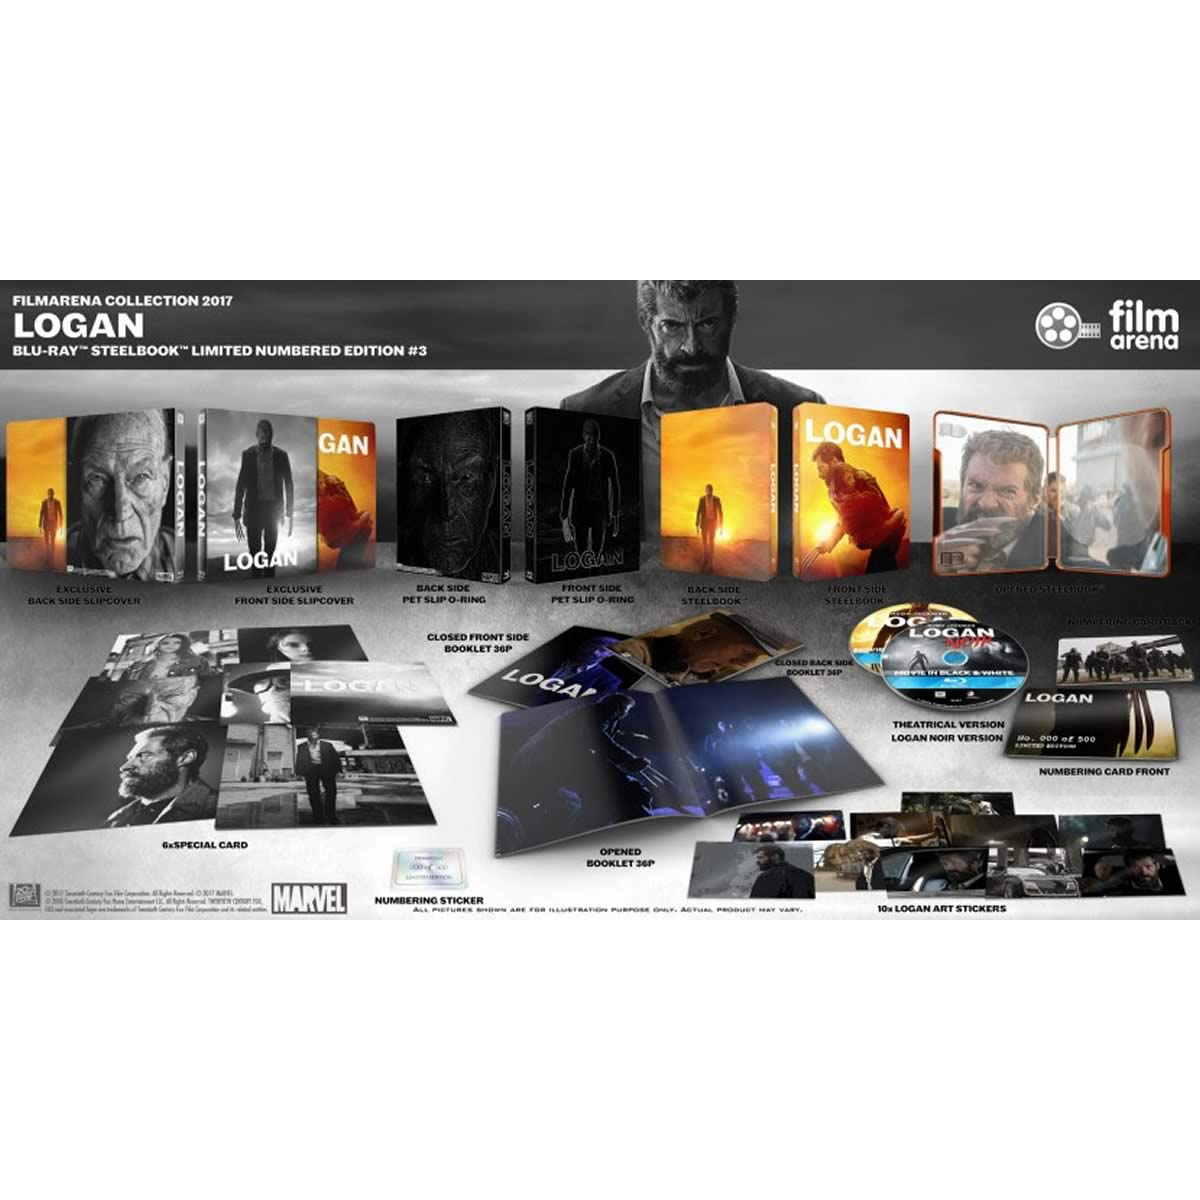 LOGAN Theatrical & Noir Limited Collector's Numbered Edition Steelbook + BOOKLET + CARDS + STICKERS (2 BLU-RAY)